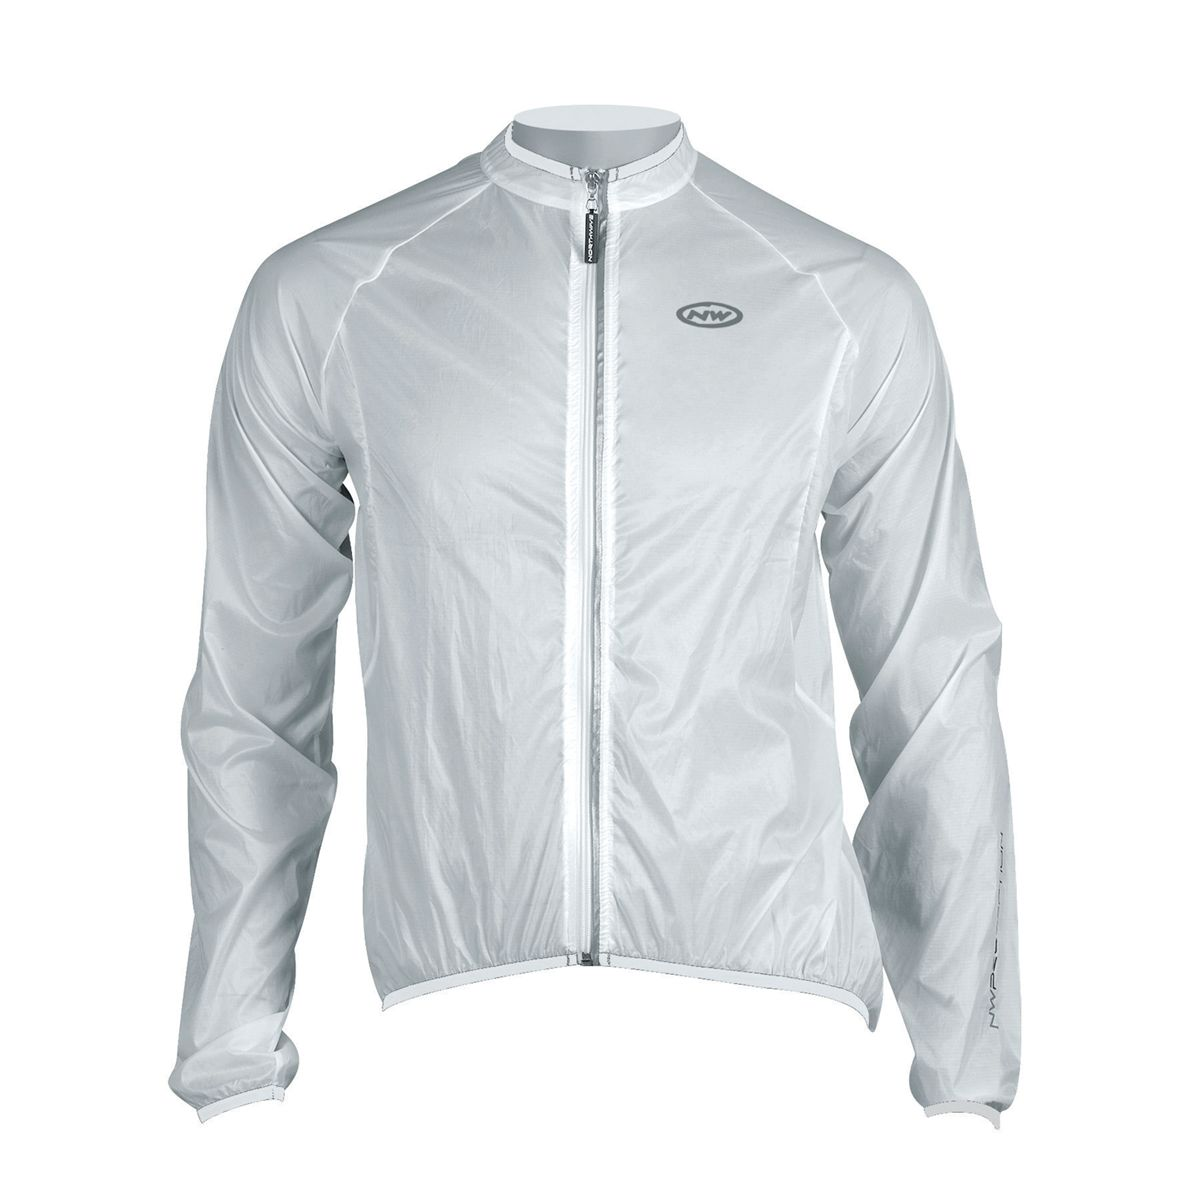 BREEZE PRO JACKET